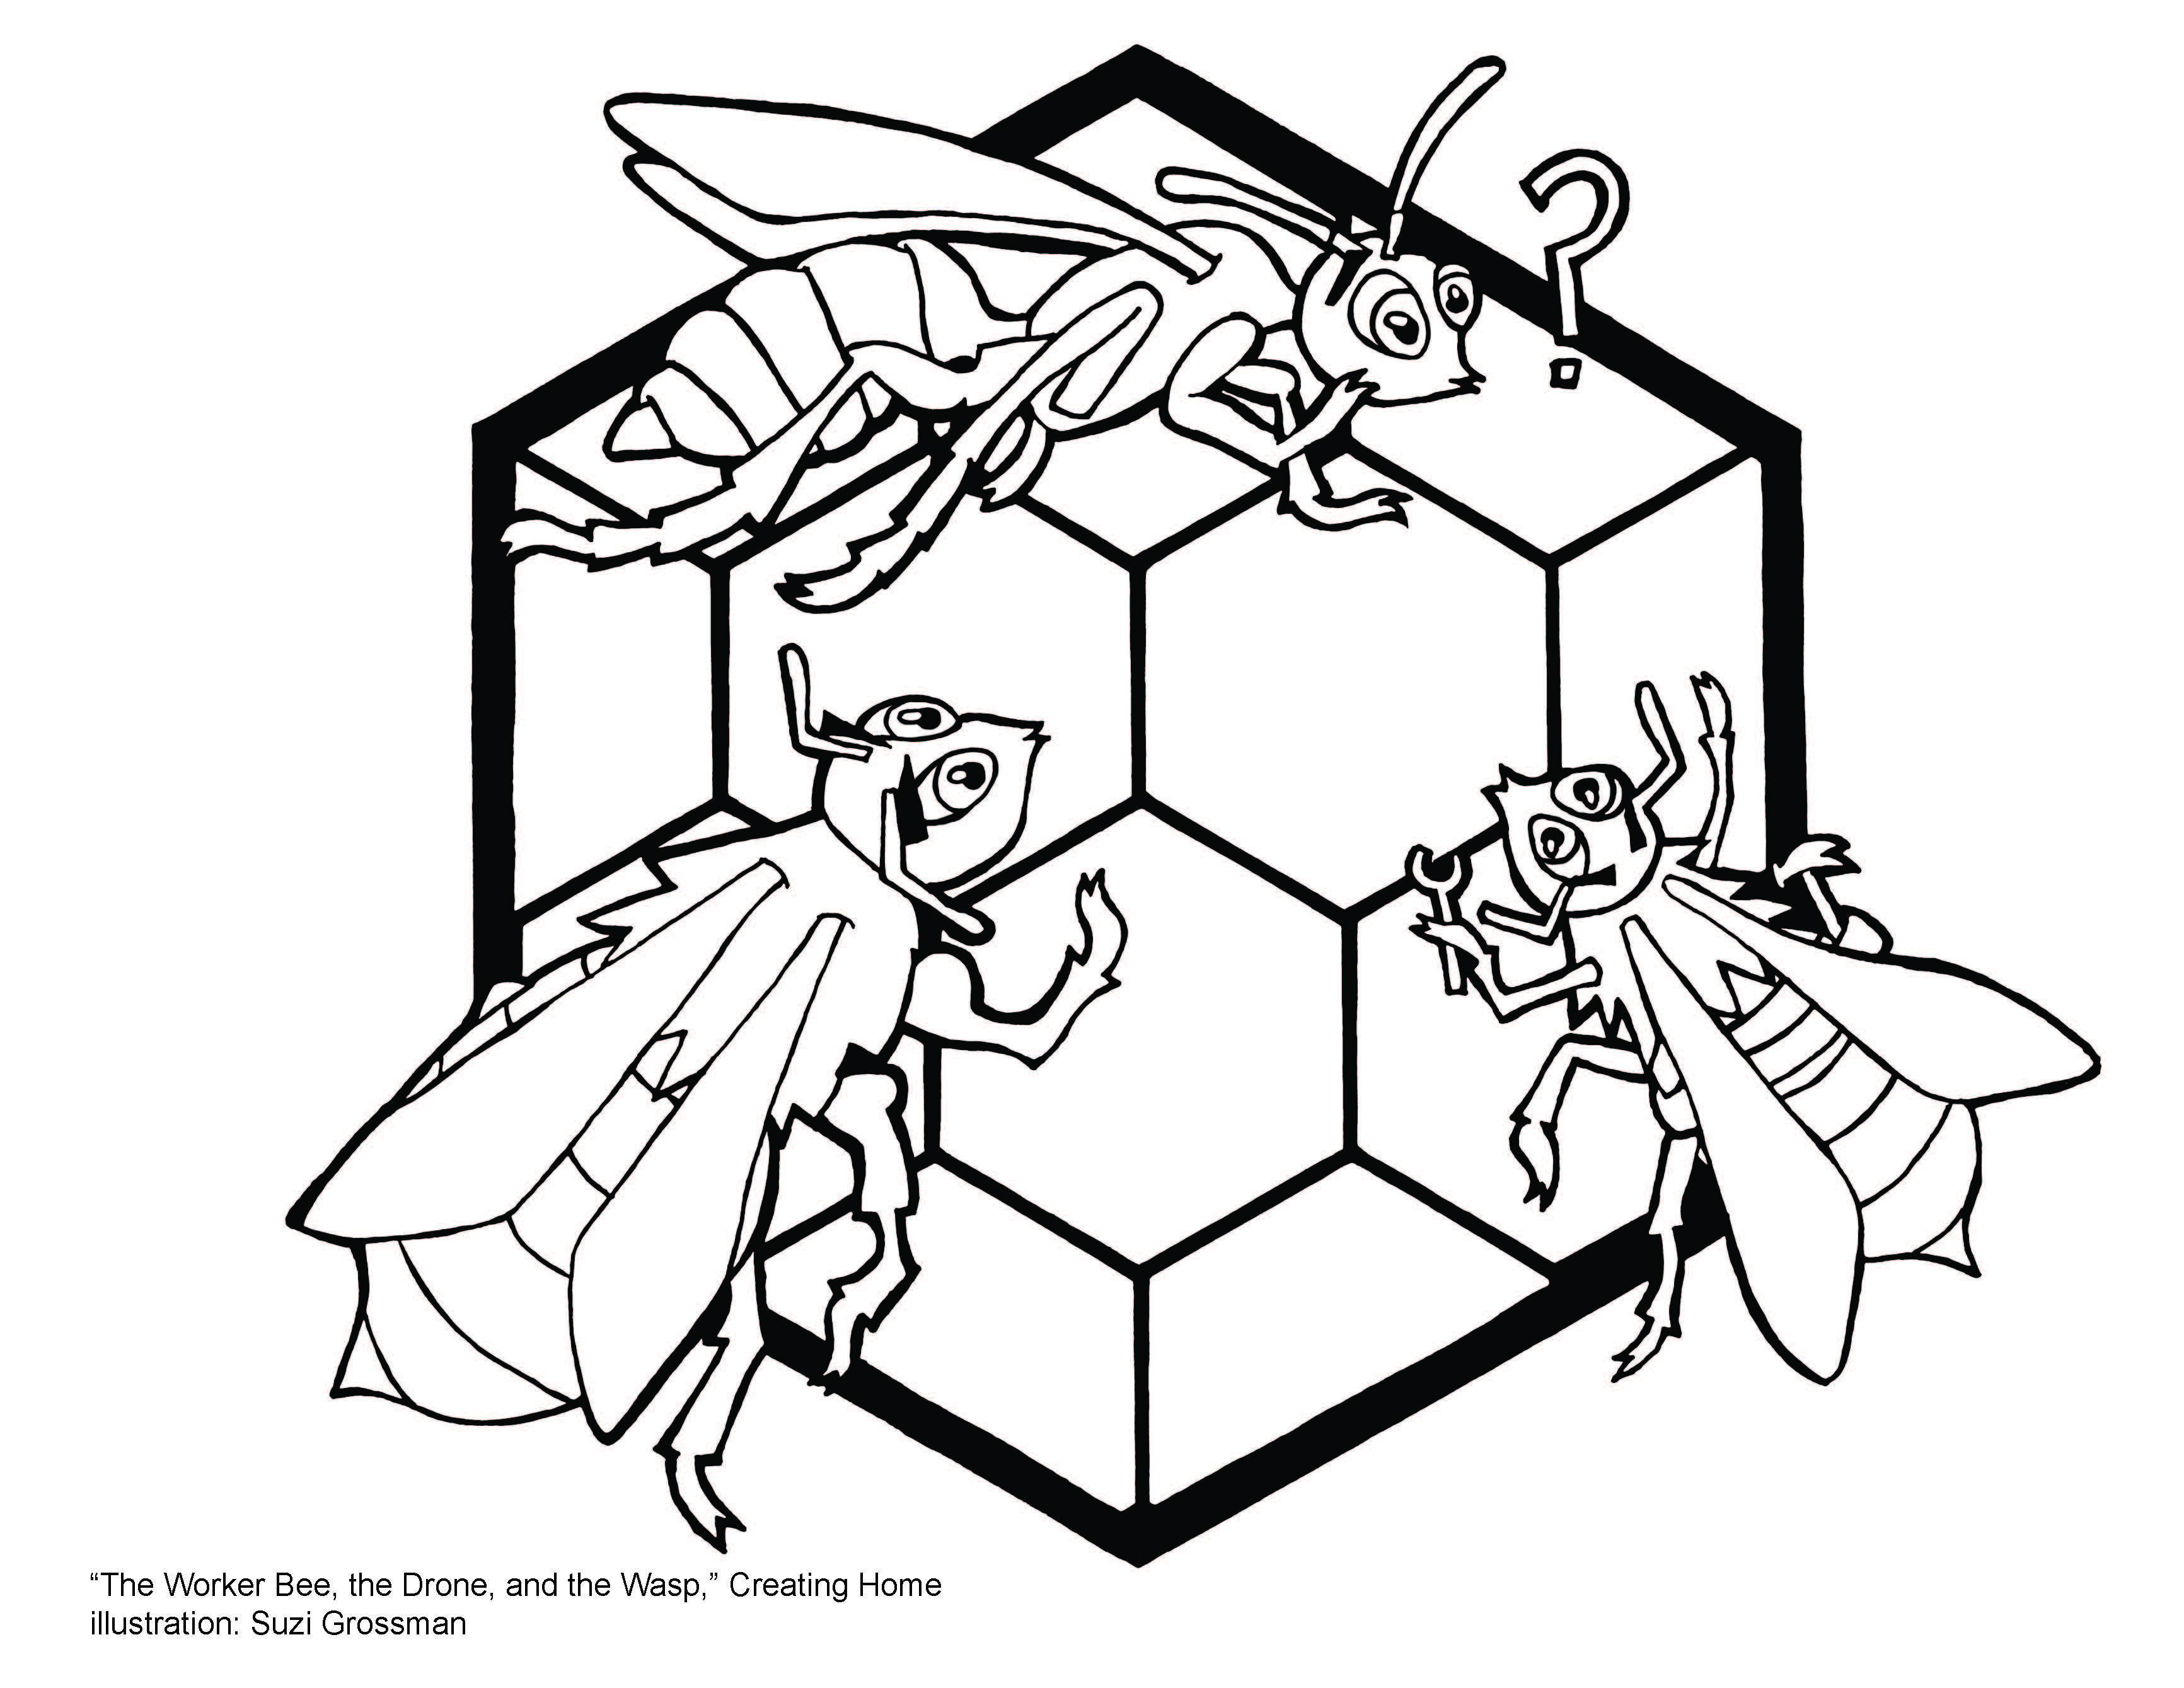 Aesop's Fable of the Worker Bee, the Drone, and the Wasp